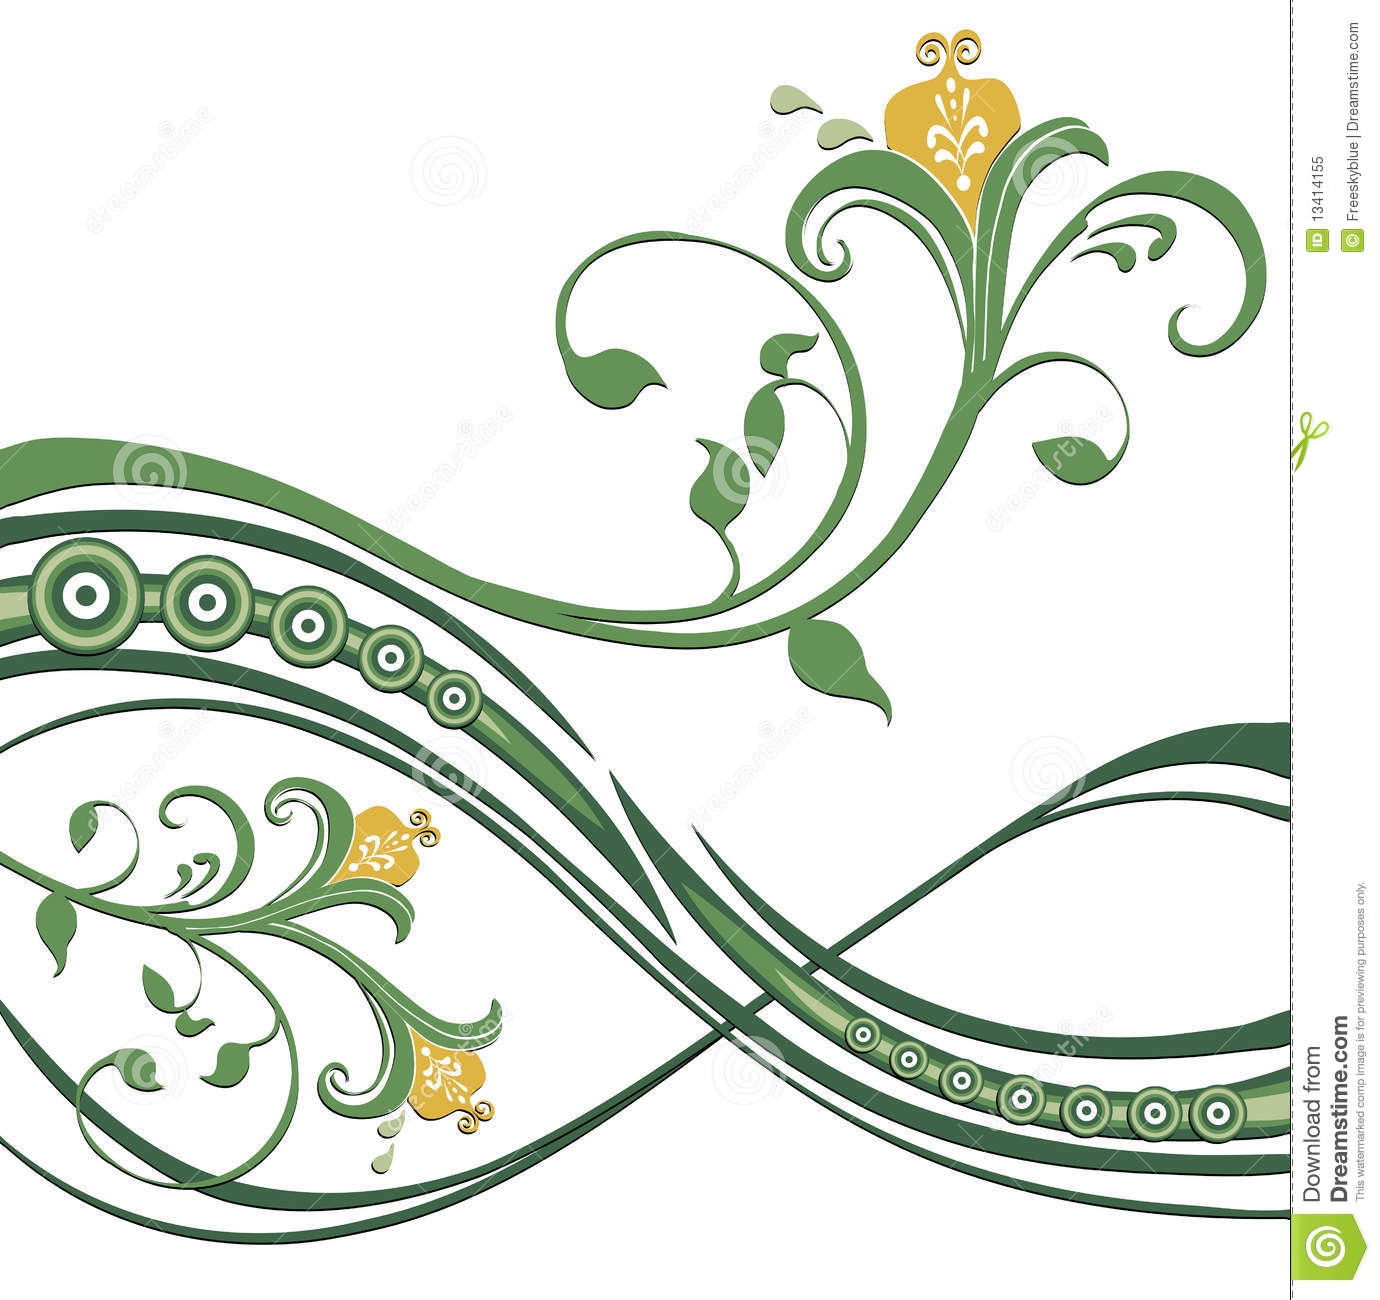 Black Flower And Vines Pattern Royalty Free Stock Image: Flower And Green Vines Pattern Royalty Free Stock Photo